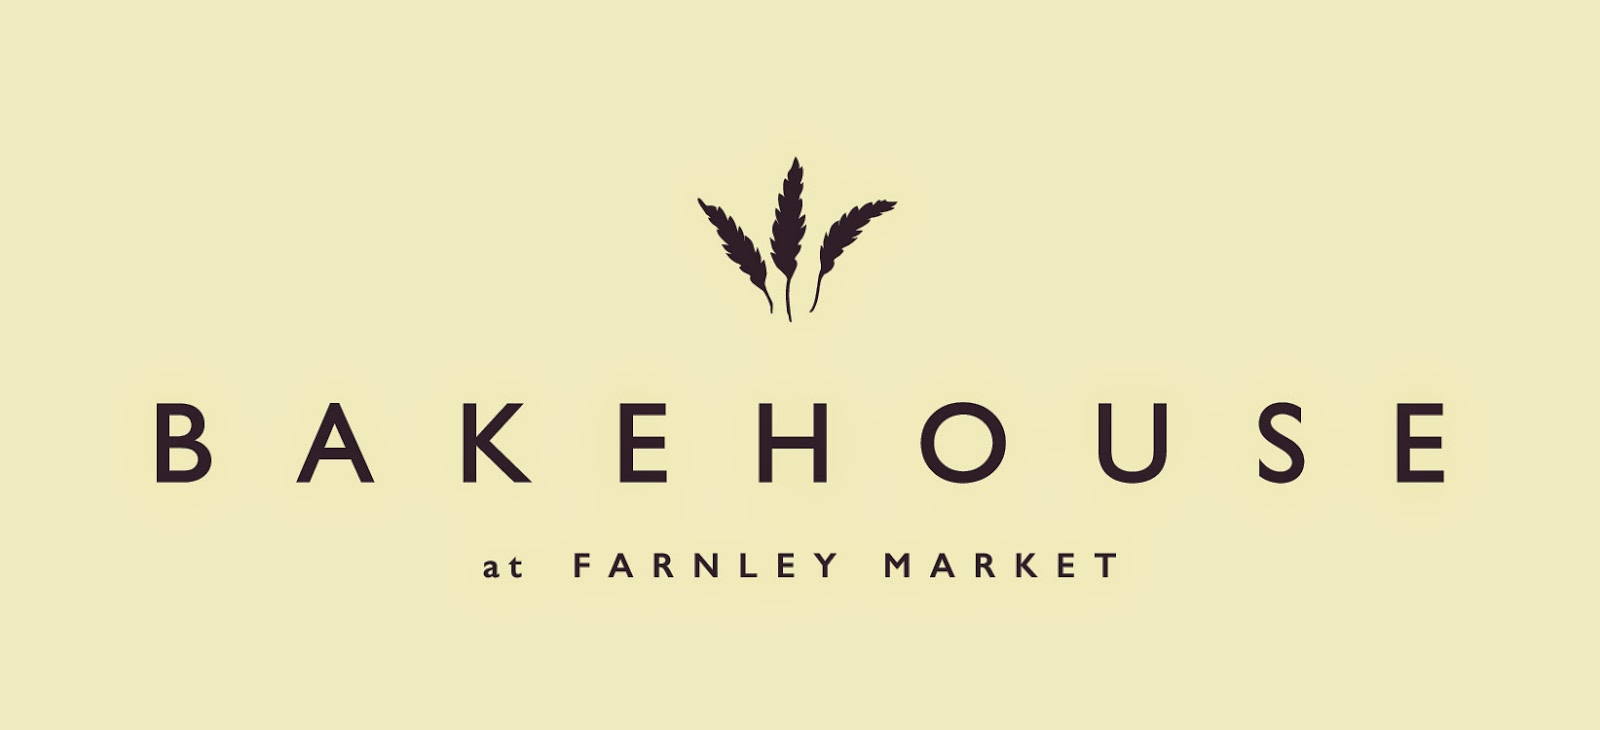 Source: http://holmfirthevents.co.uk/event/opening-bakehouse-farnley-tyas/